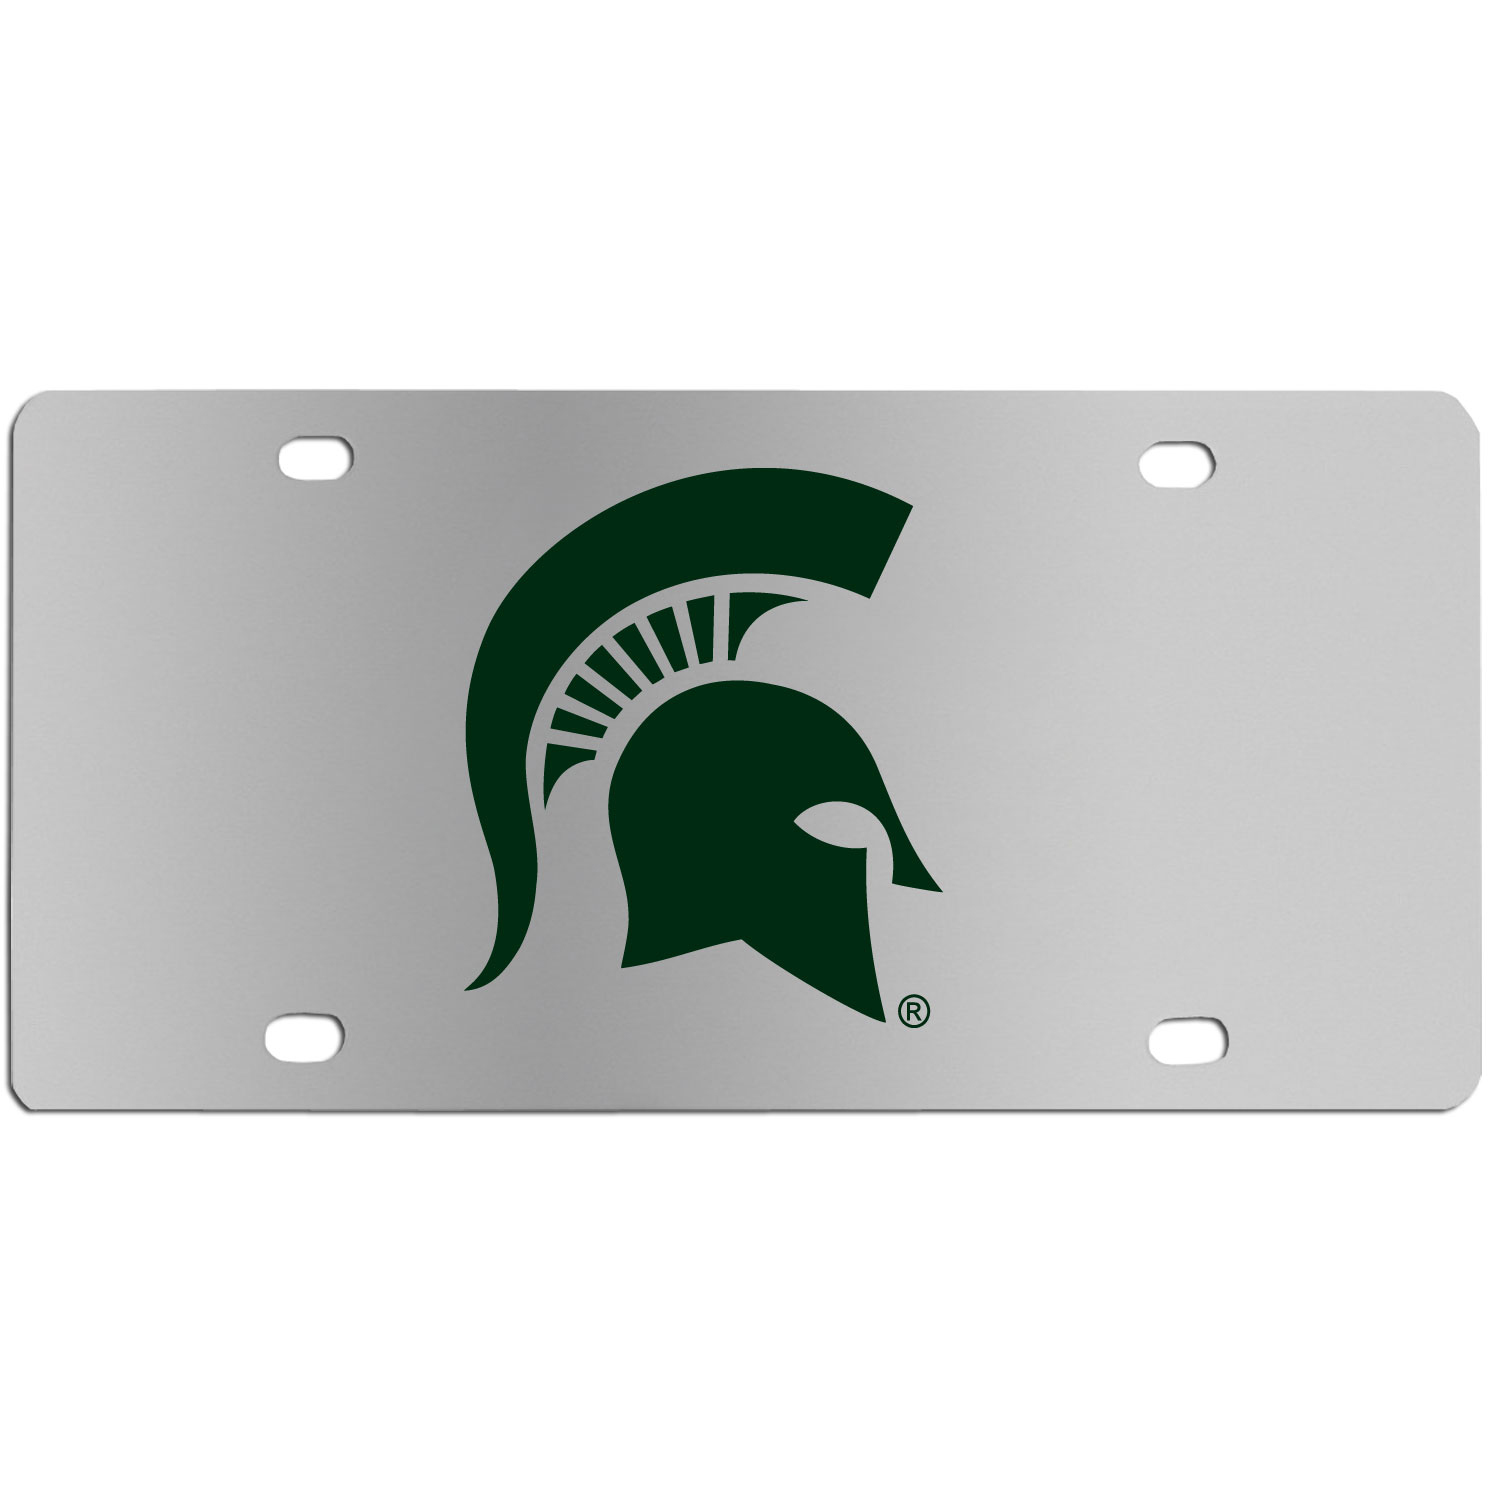 Michigan St. Spartans Steel License Plate Wall Plaque - This high-quality stainless steel license plate features a detailed team logo on a the polished surface. The attractive plate is perfect for wall mounting in your home or office to become the perfect die-hard Michigan St. Spartans fan decor.